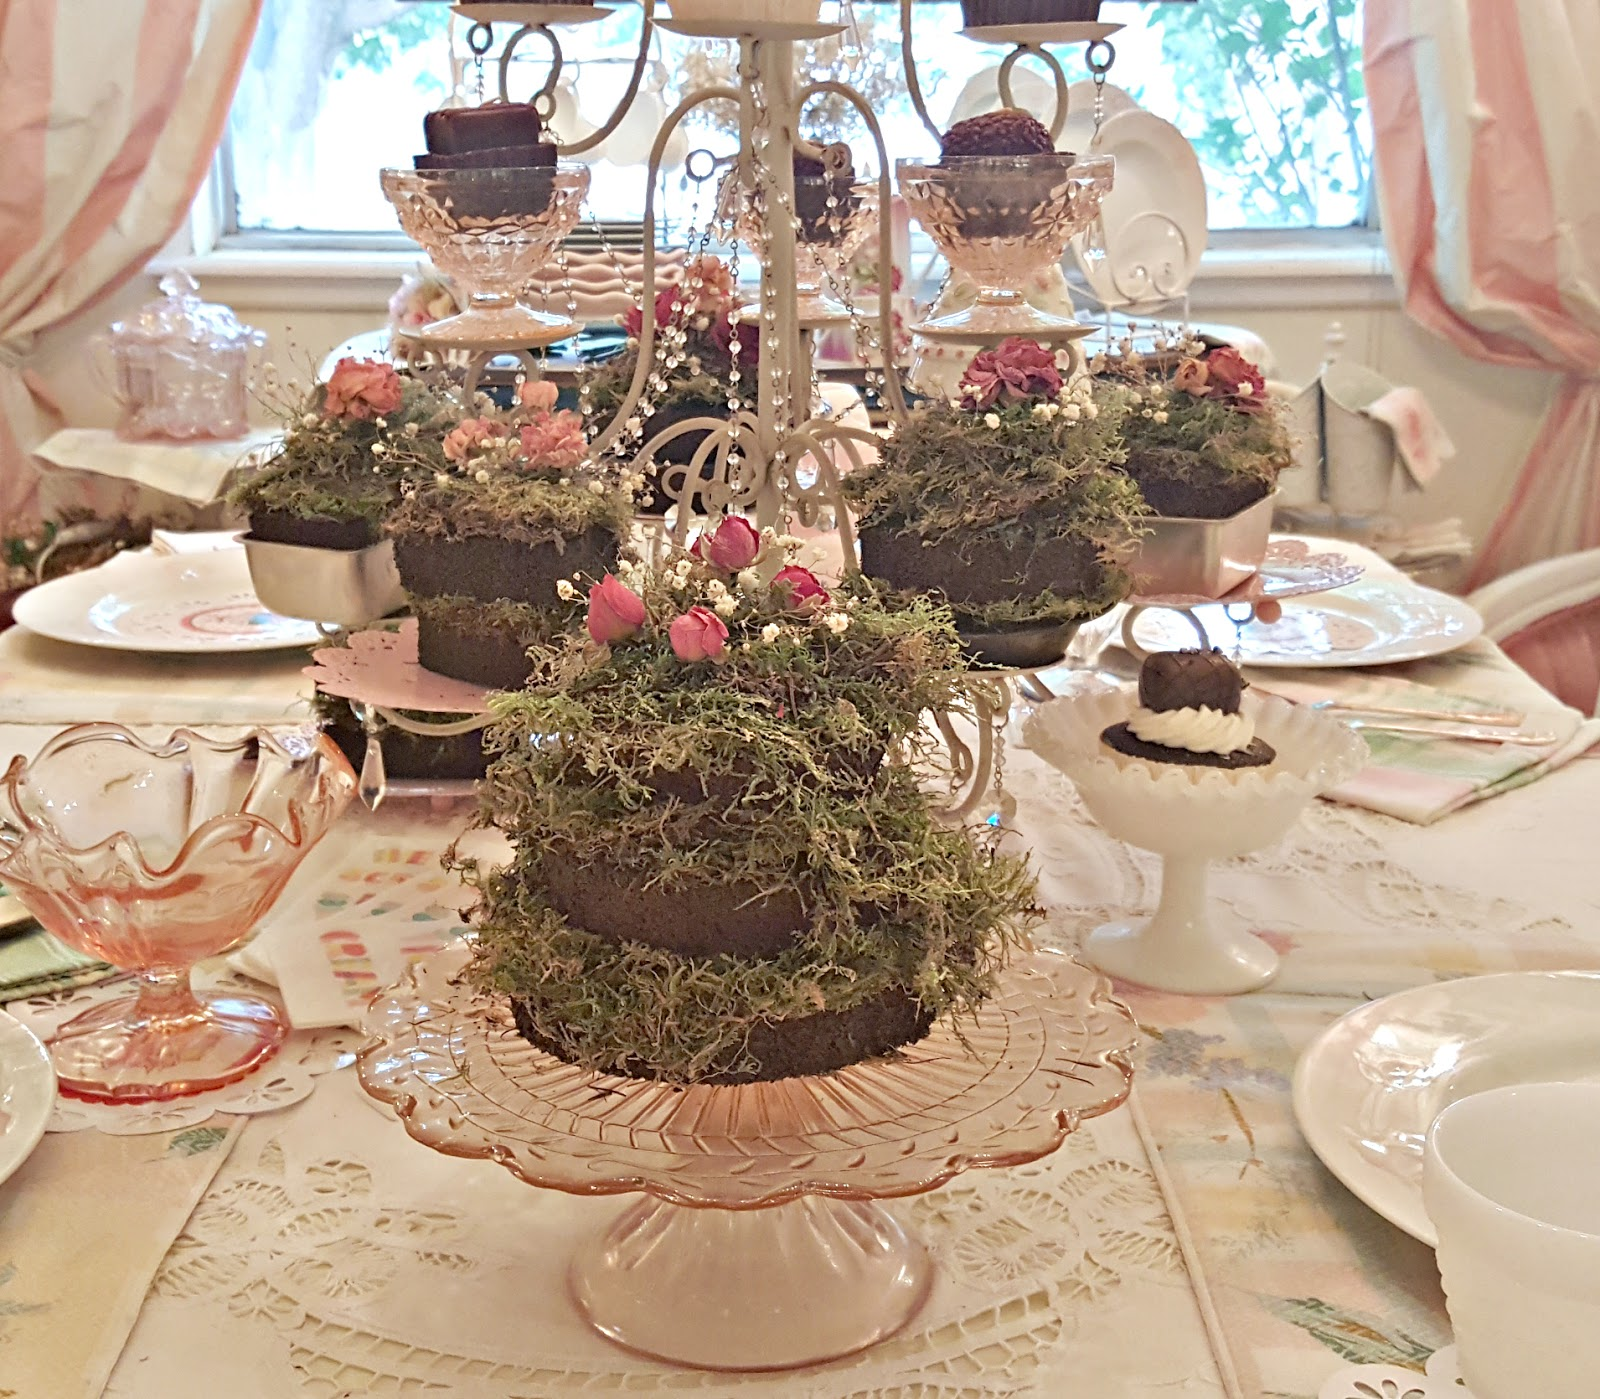 Penny's Vintage Home: Indoor Ice Cream Party